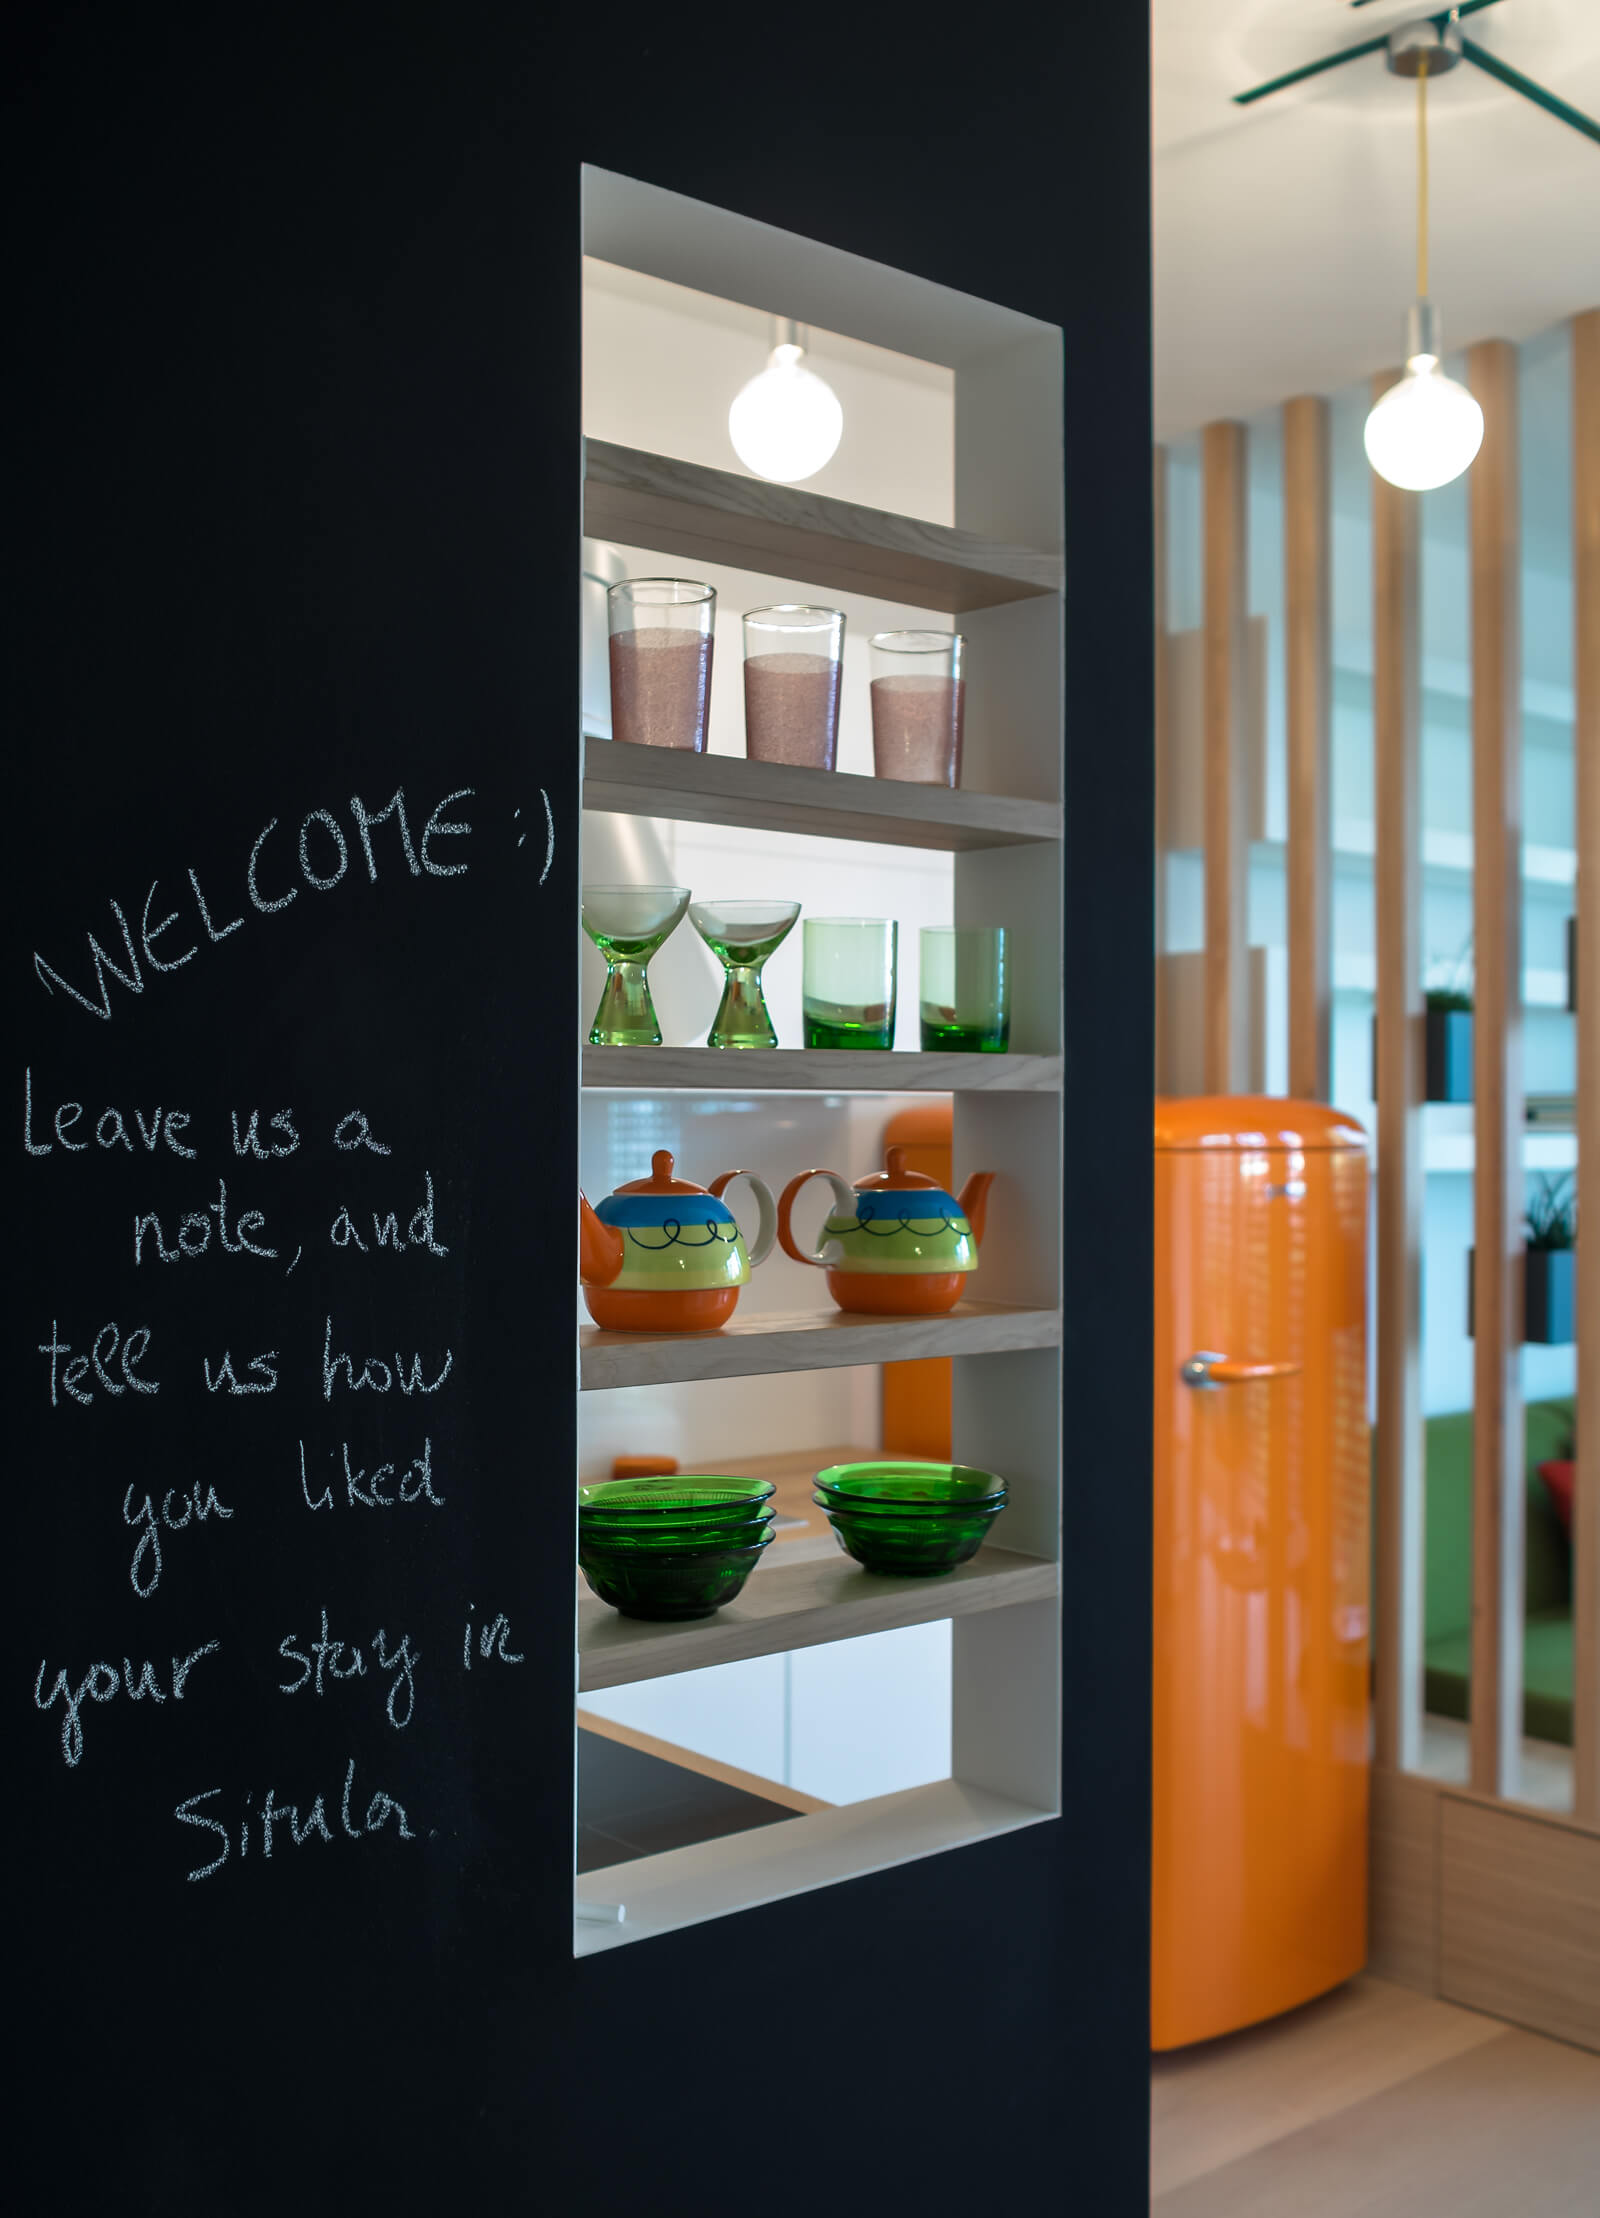 Here we see a close view of the kitchen dividing wall, covered in chalkboard material so that guests may leave messages. Built-in shelving provides space for decoration.